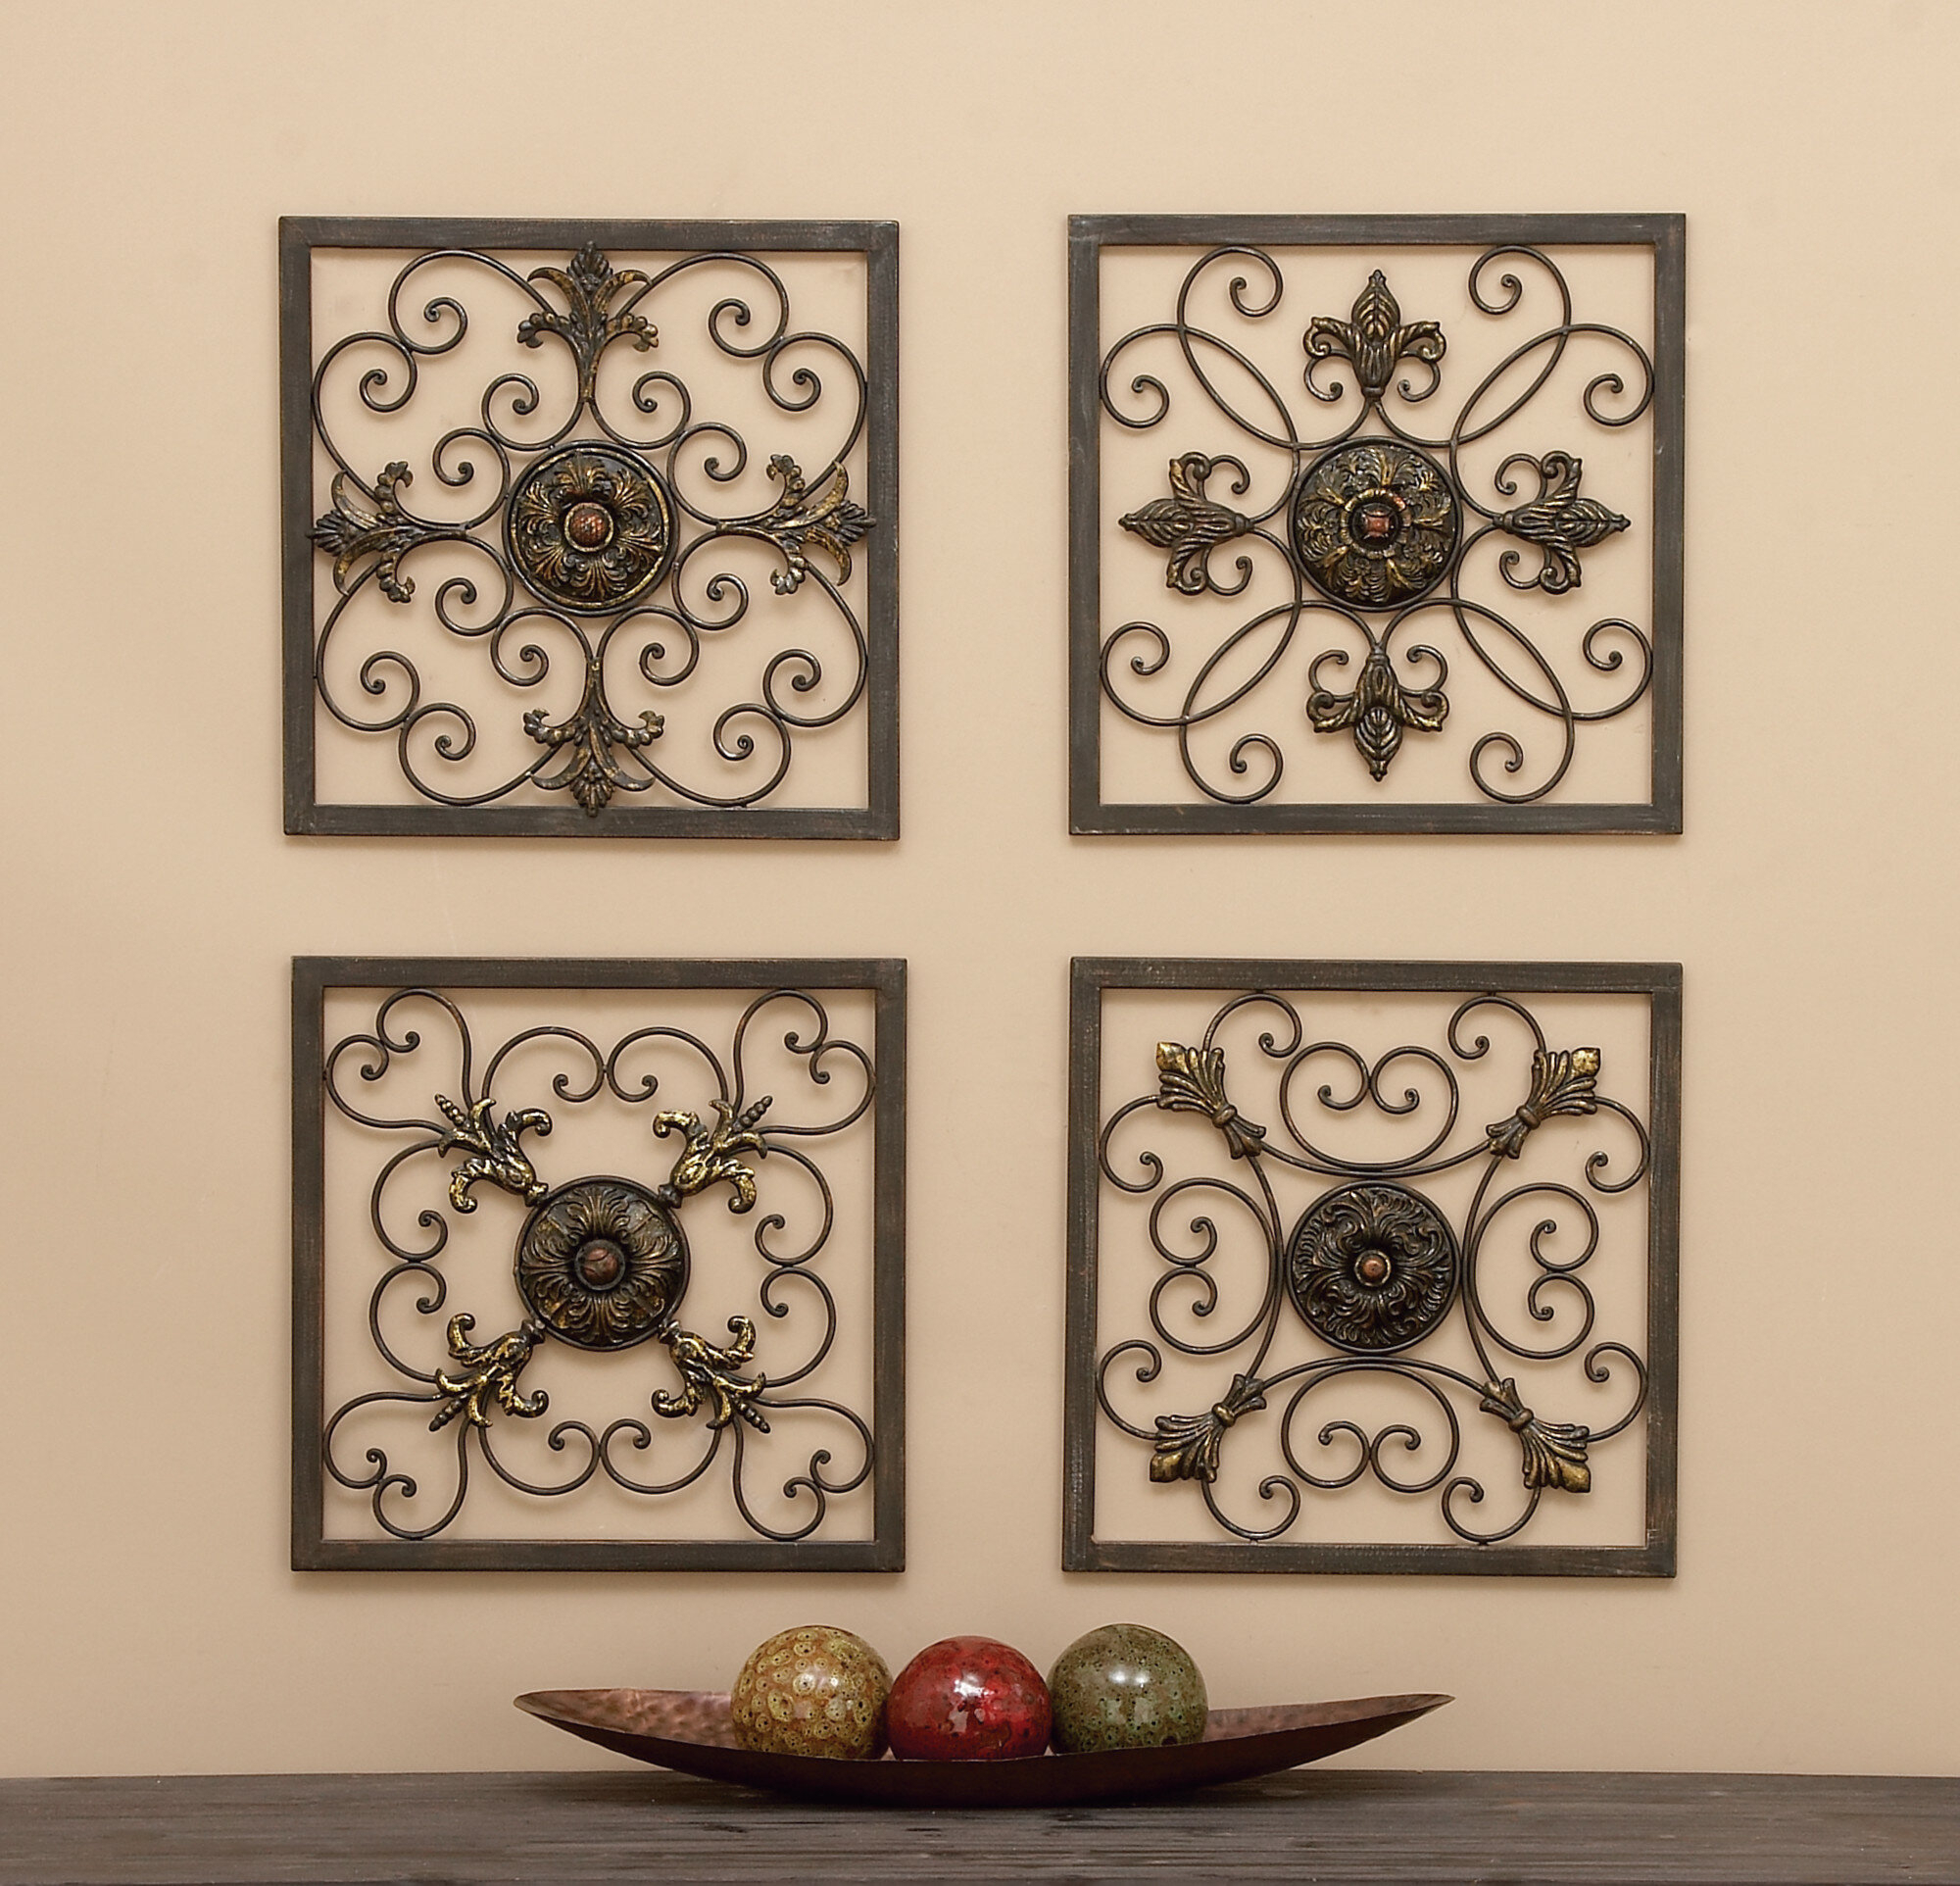 Wayfair Intended For Favorite 4 Piece Wall Decor Sets By Charlton Home (View 3 of 20)